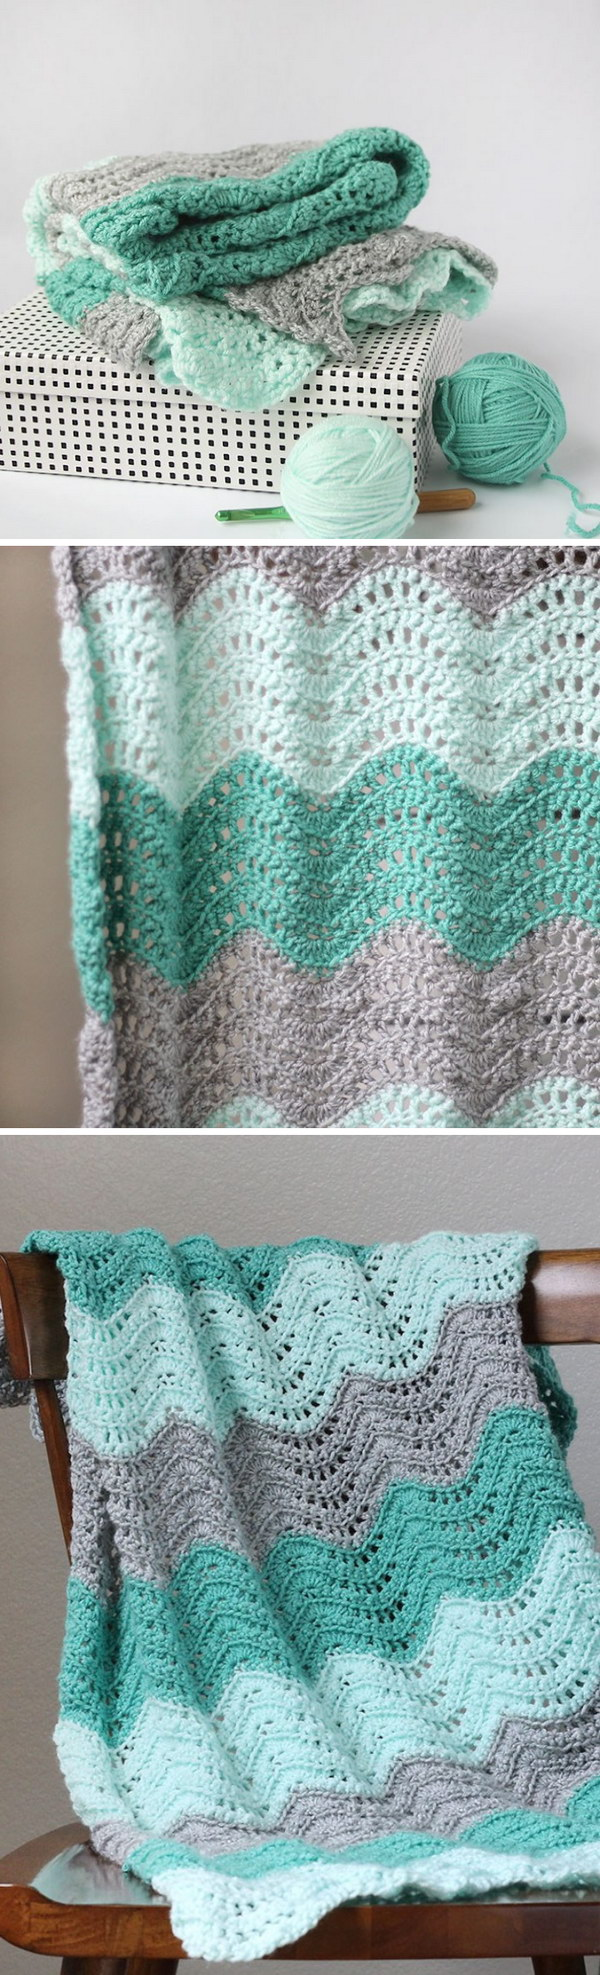 Feather And Fan Crocheted Baby Blanket.